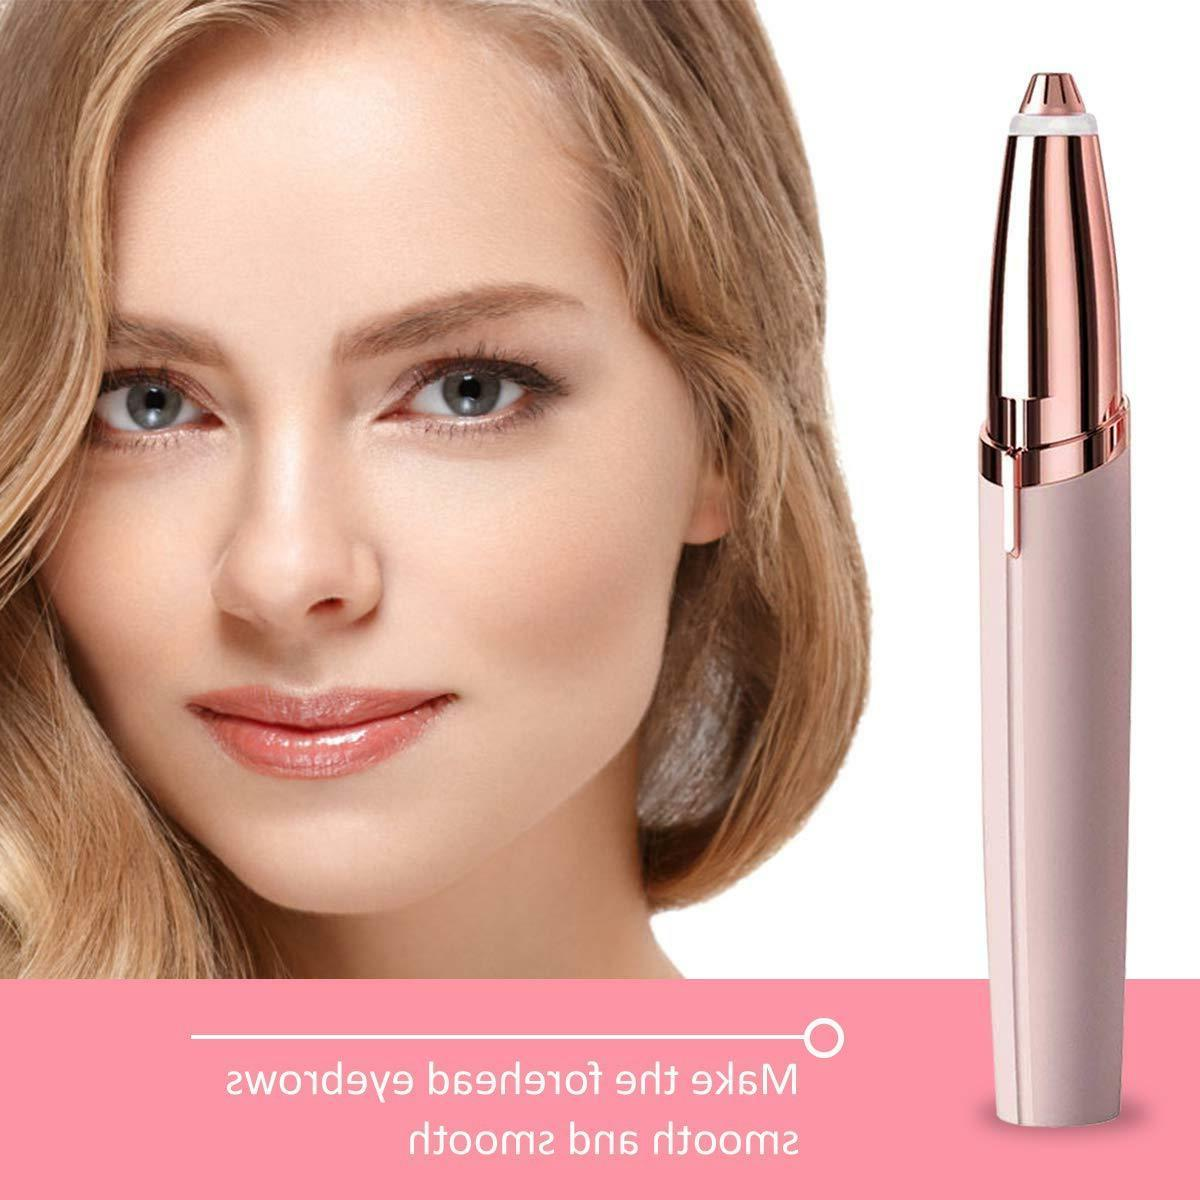 Eyebrow Women Electric touch Finishing Trimmer